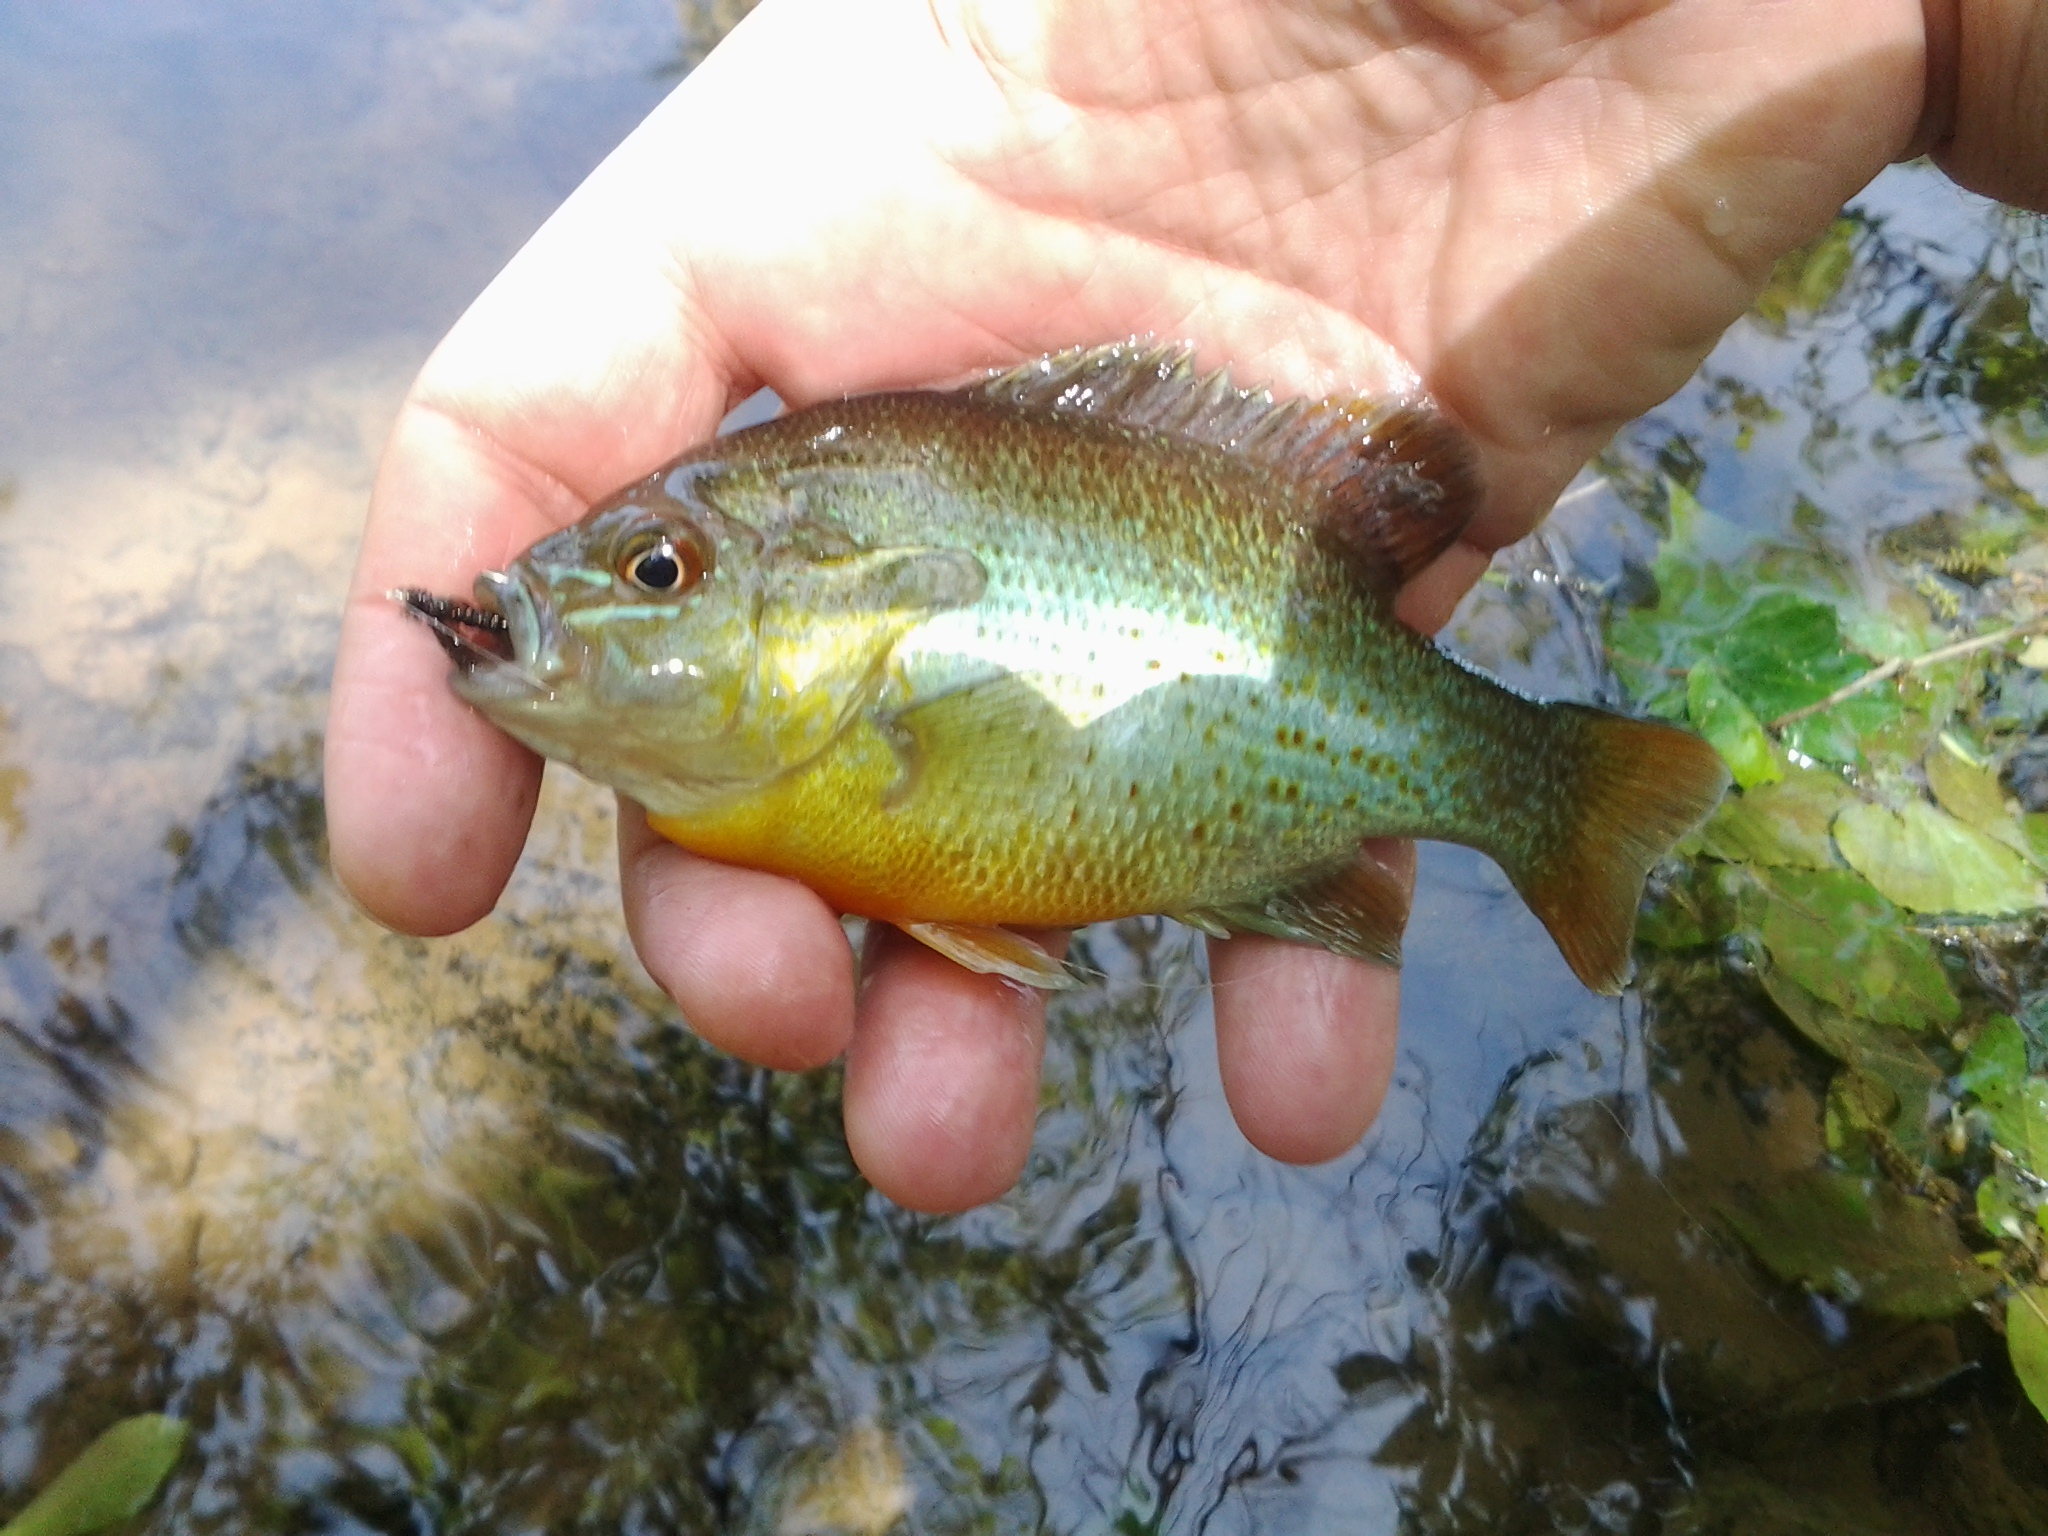 this french creek redbreast sunfish added to the surrounding symphony of green and orange color